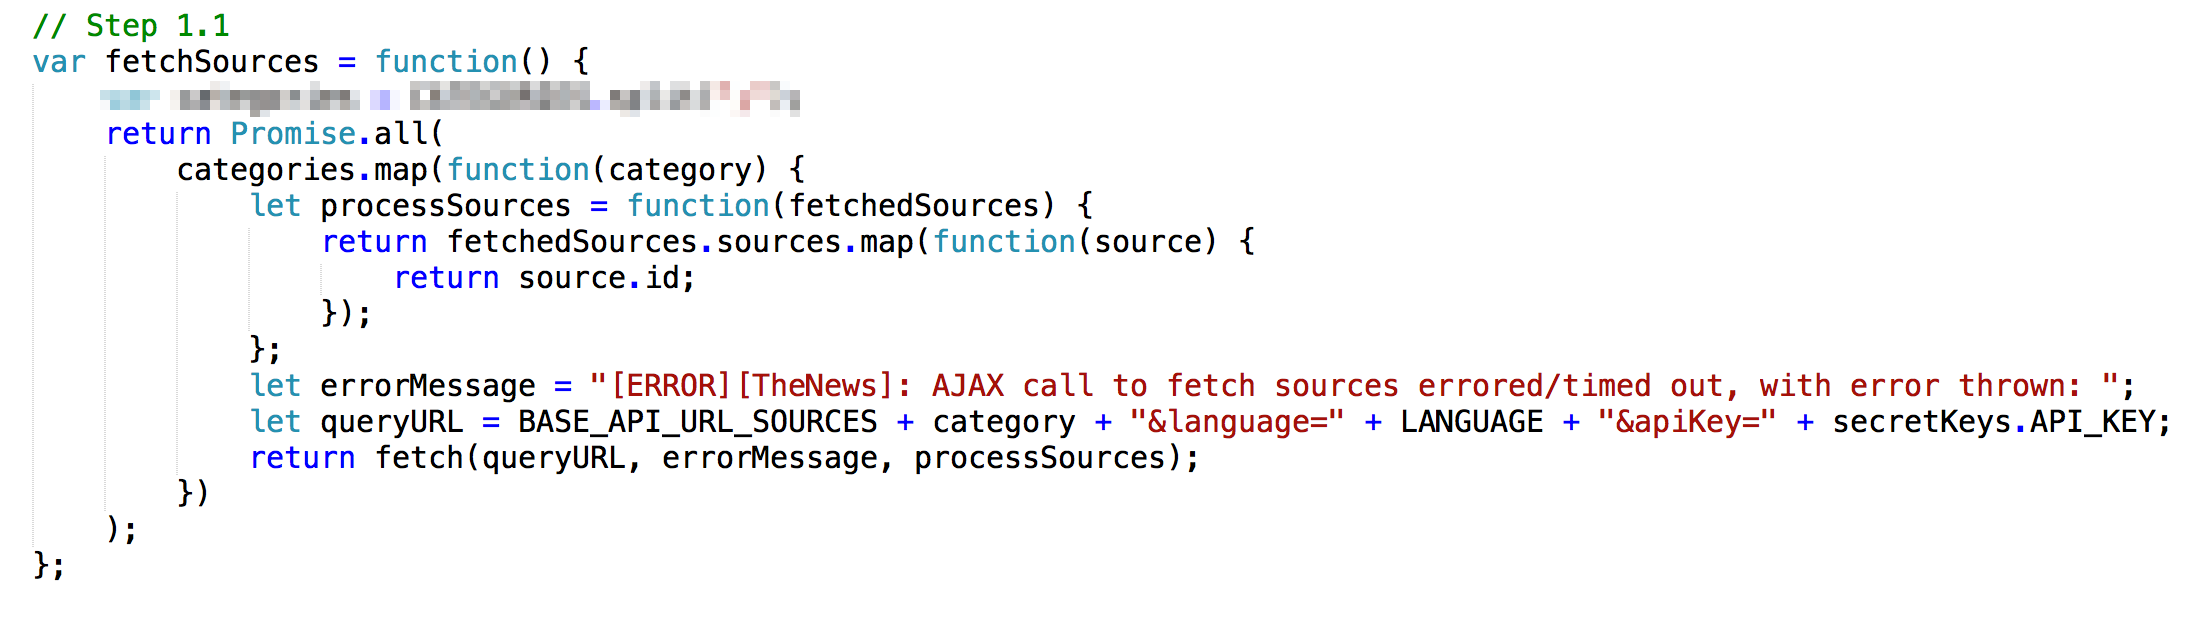 fetchSources - image